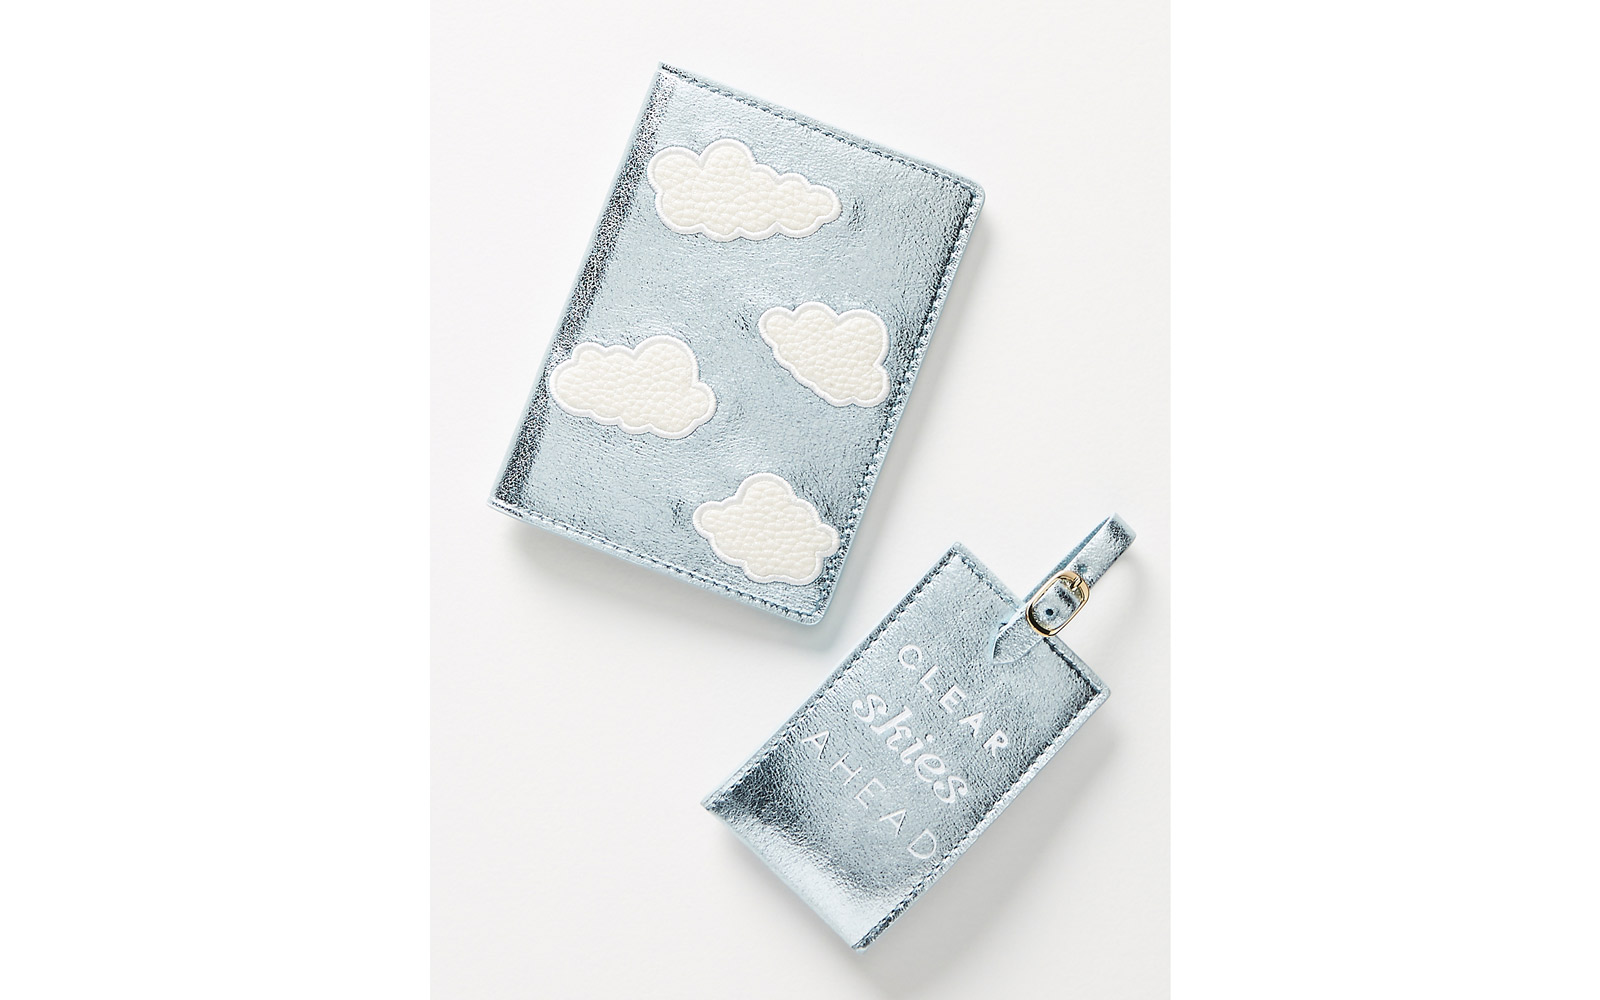 anthropologie luggage tag set